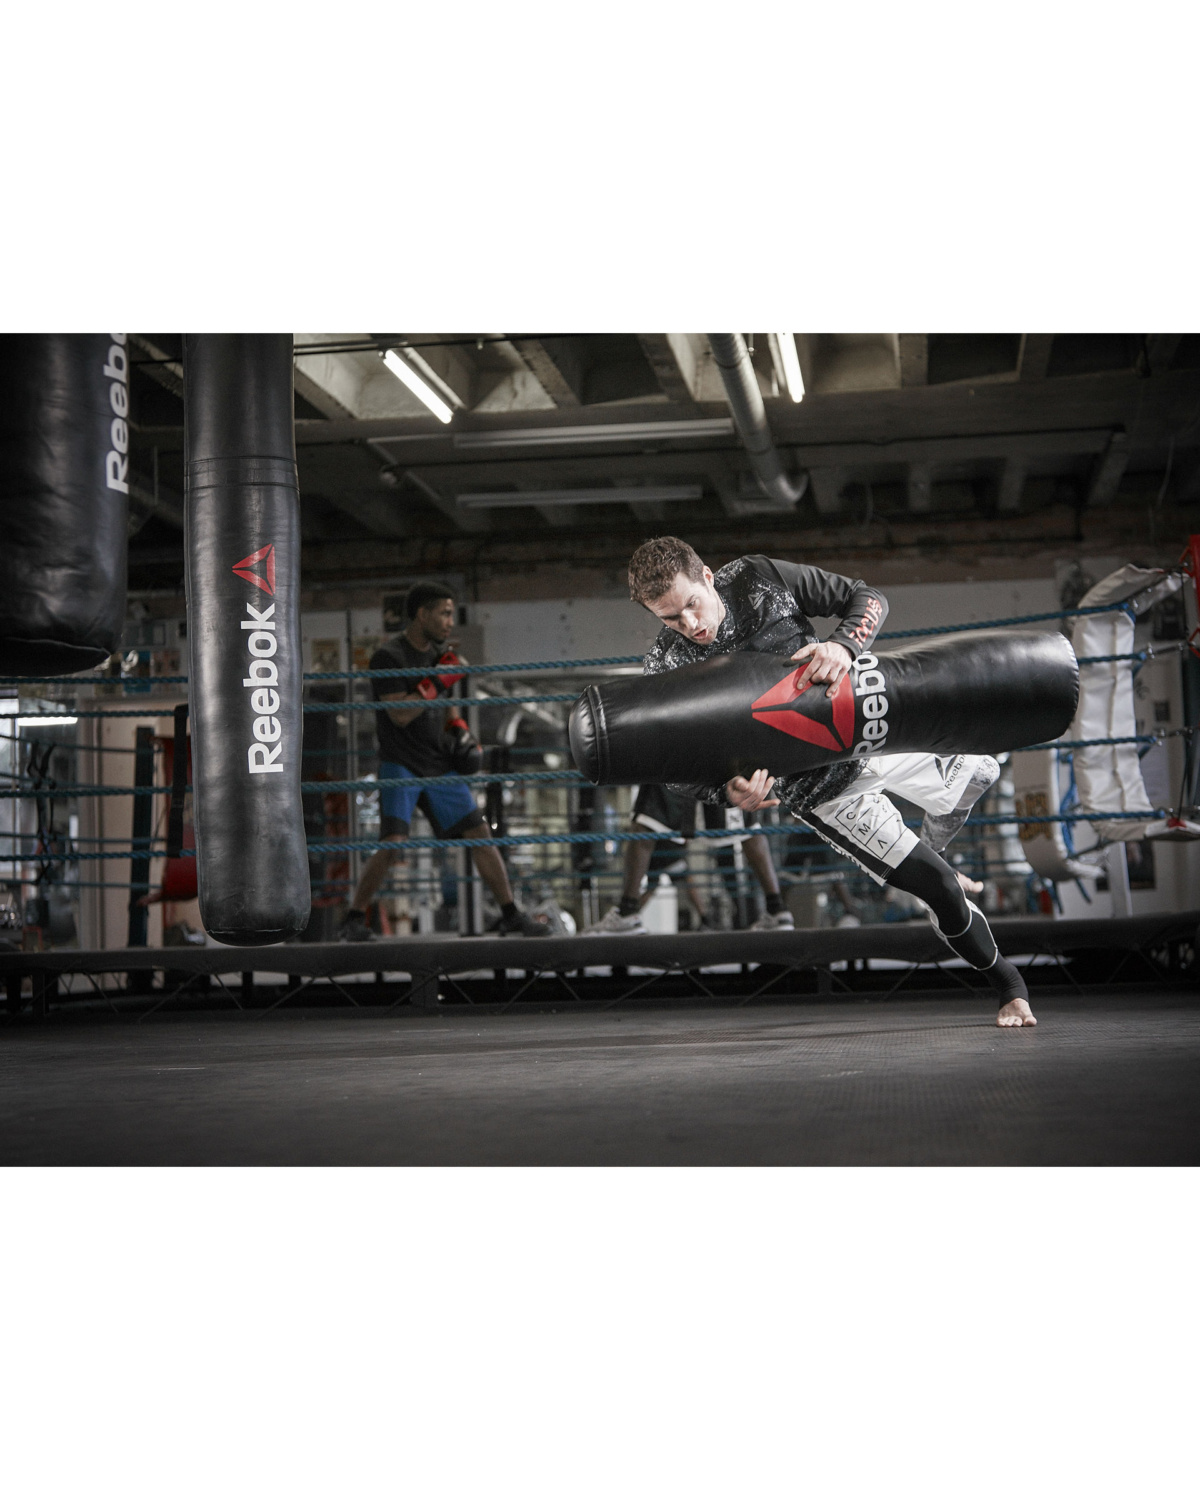 reebok_combat_grapping_bag_lifestyle_42